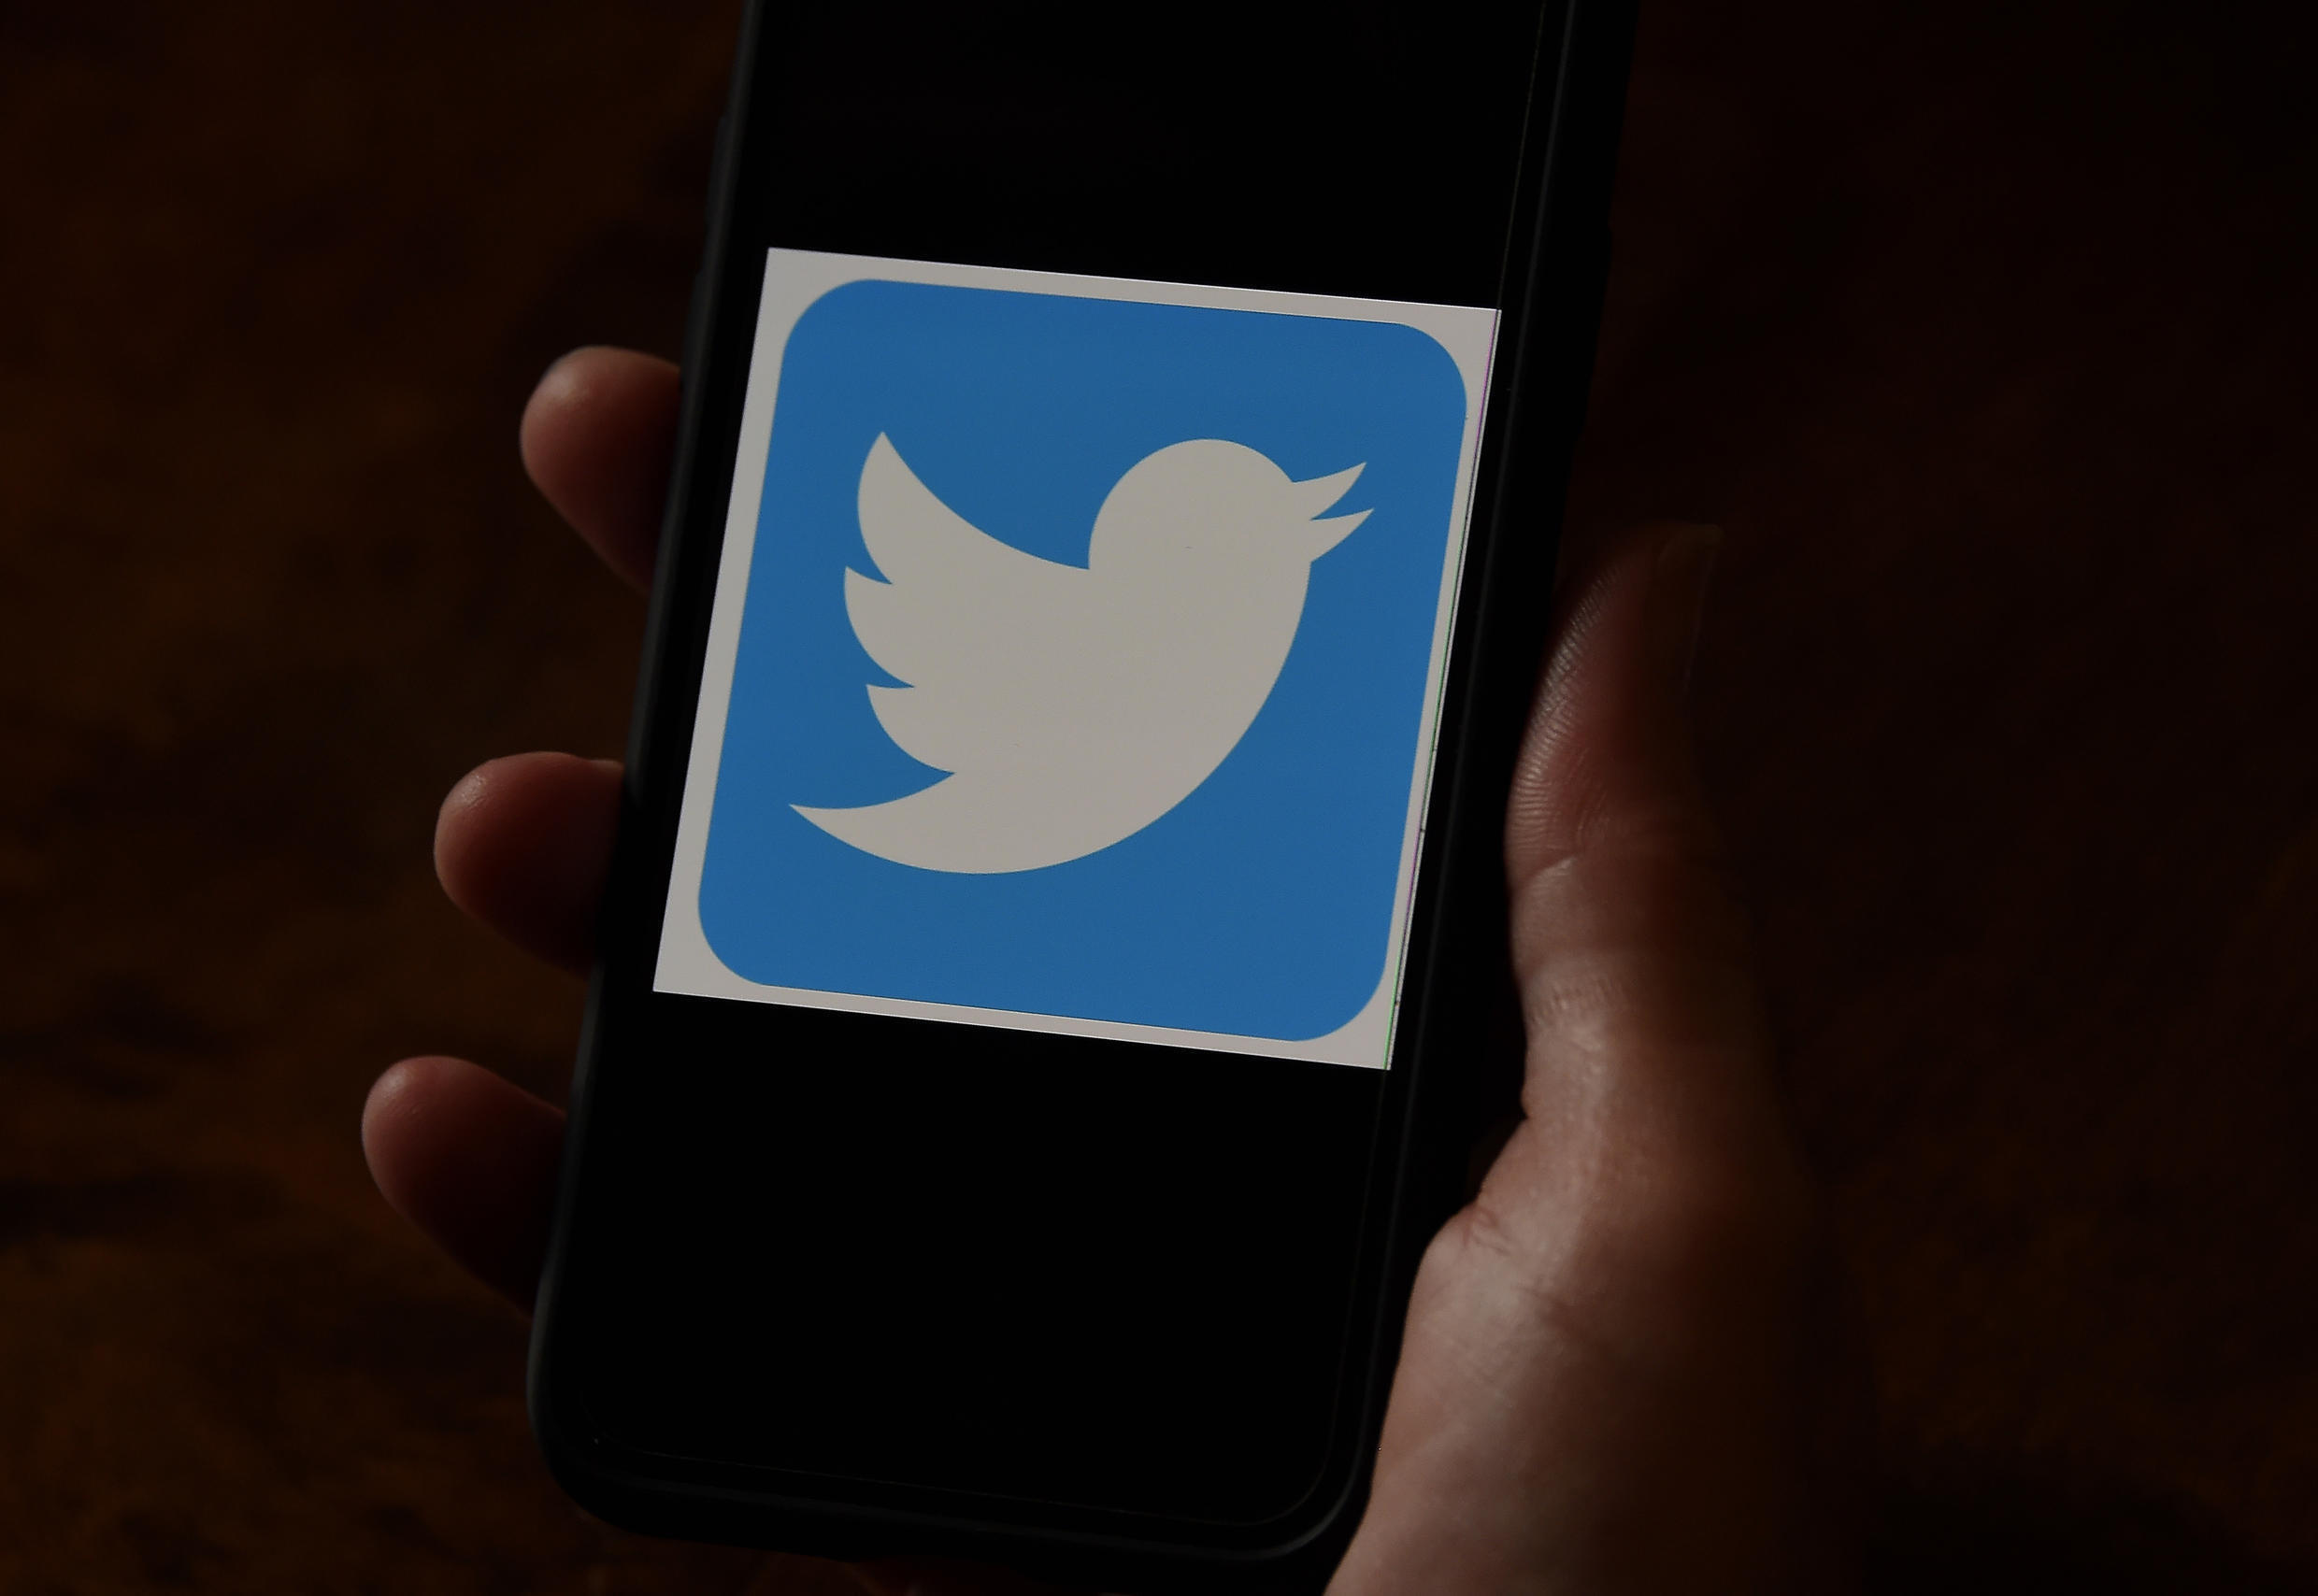 Twitter accounts with names playing on Trump themes and seeking to amplify Donald Trump's website posts have been taken offline, according to the platform